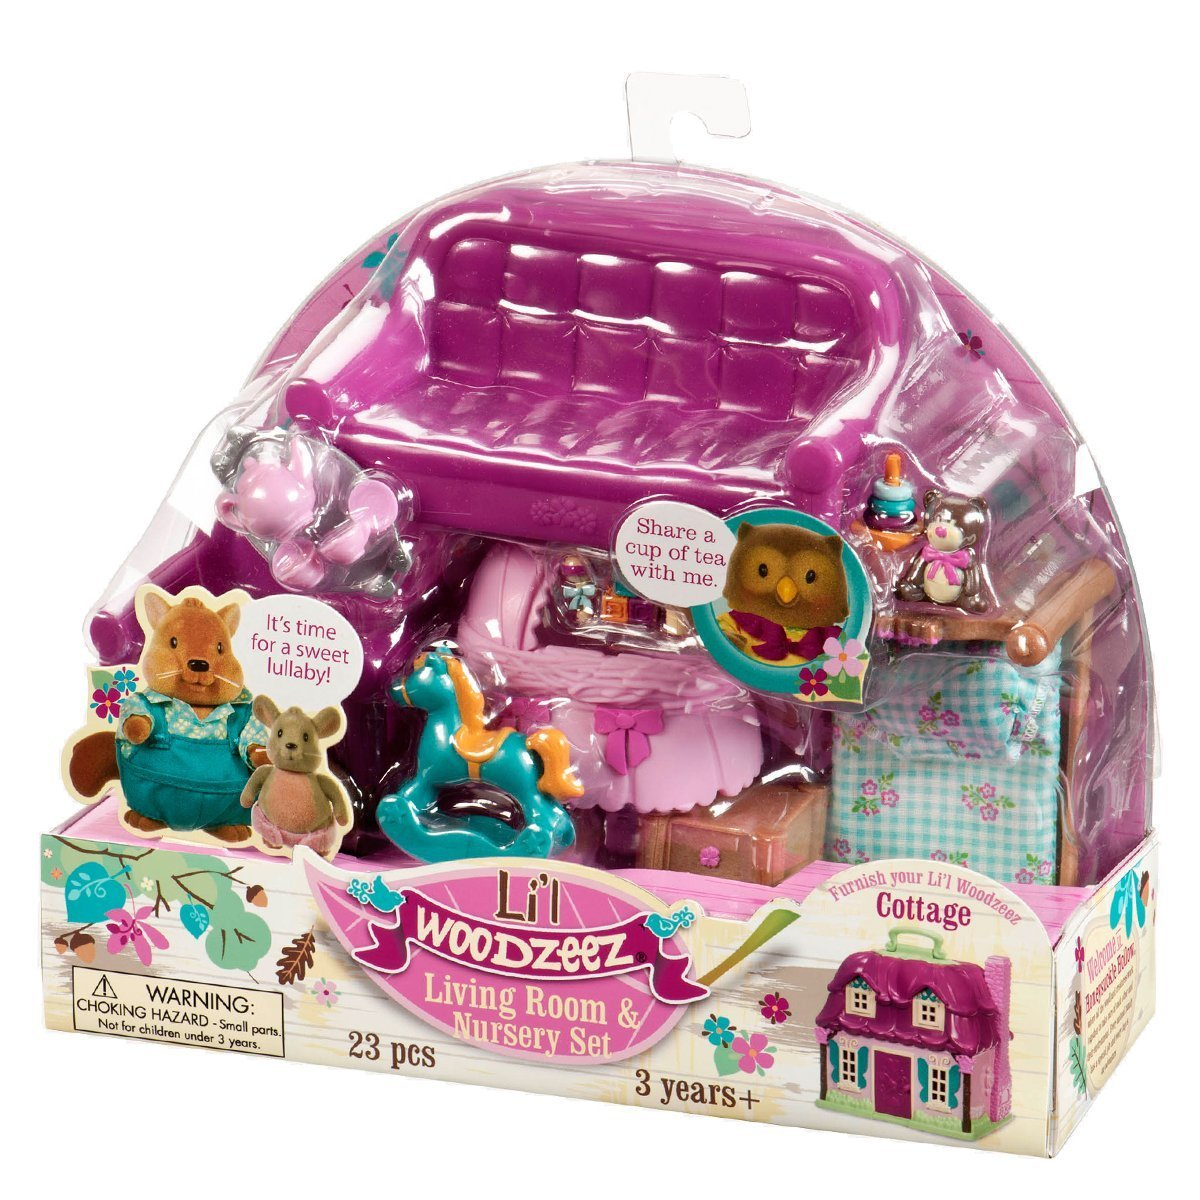 Lil Woodzeez Living Room and Nursery Set - Can Be Used With All Families and Environments - Ages 3+ Li' L Woodzeez 6123M